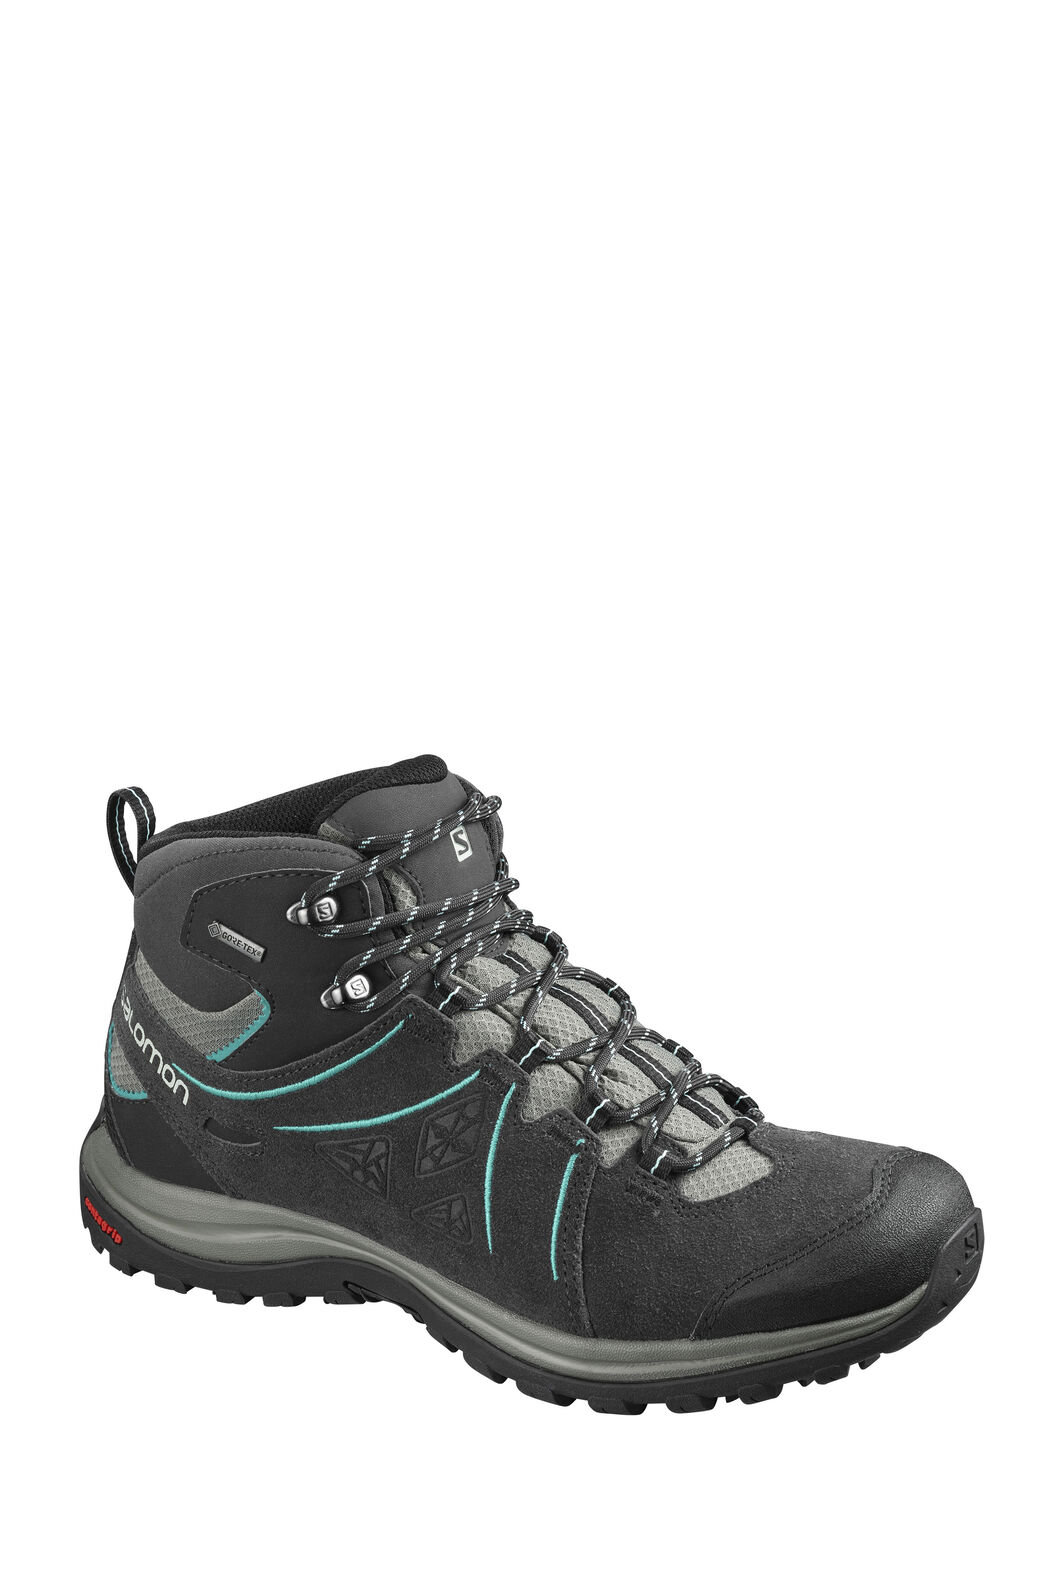 Salomon Women's Ellipse 2 GTX Hiking Boot, Black, hi-res